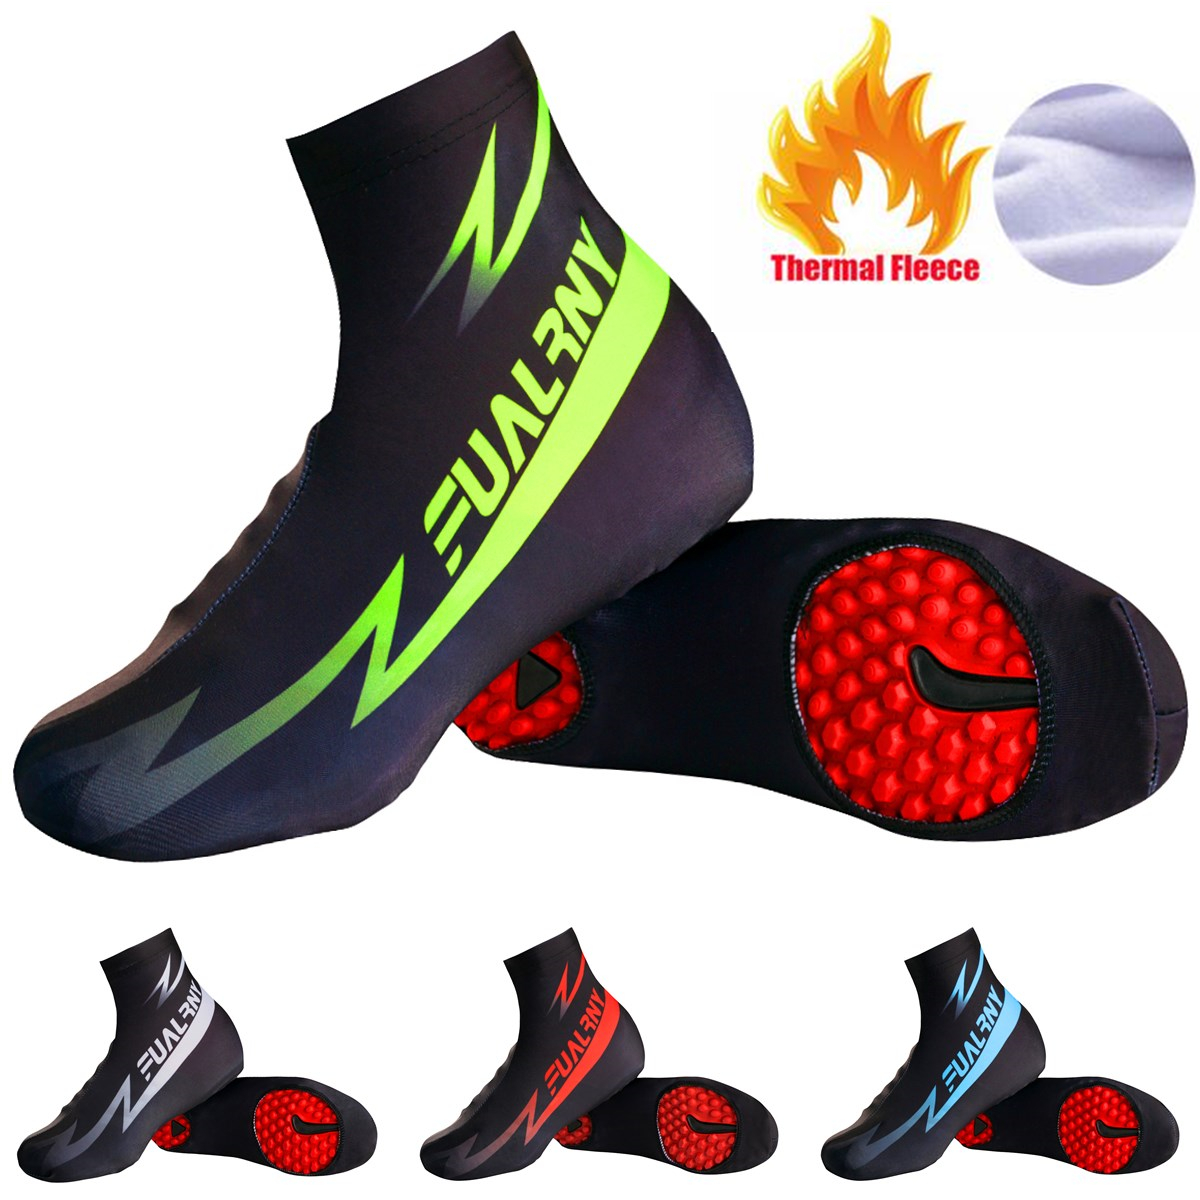 Fualrny Brand Cycling Shoe Cover Reflective MTB Bicycle Overshoes Winter Thermal Fleece Road Racing Bike Shoes Cover Copriscarpe